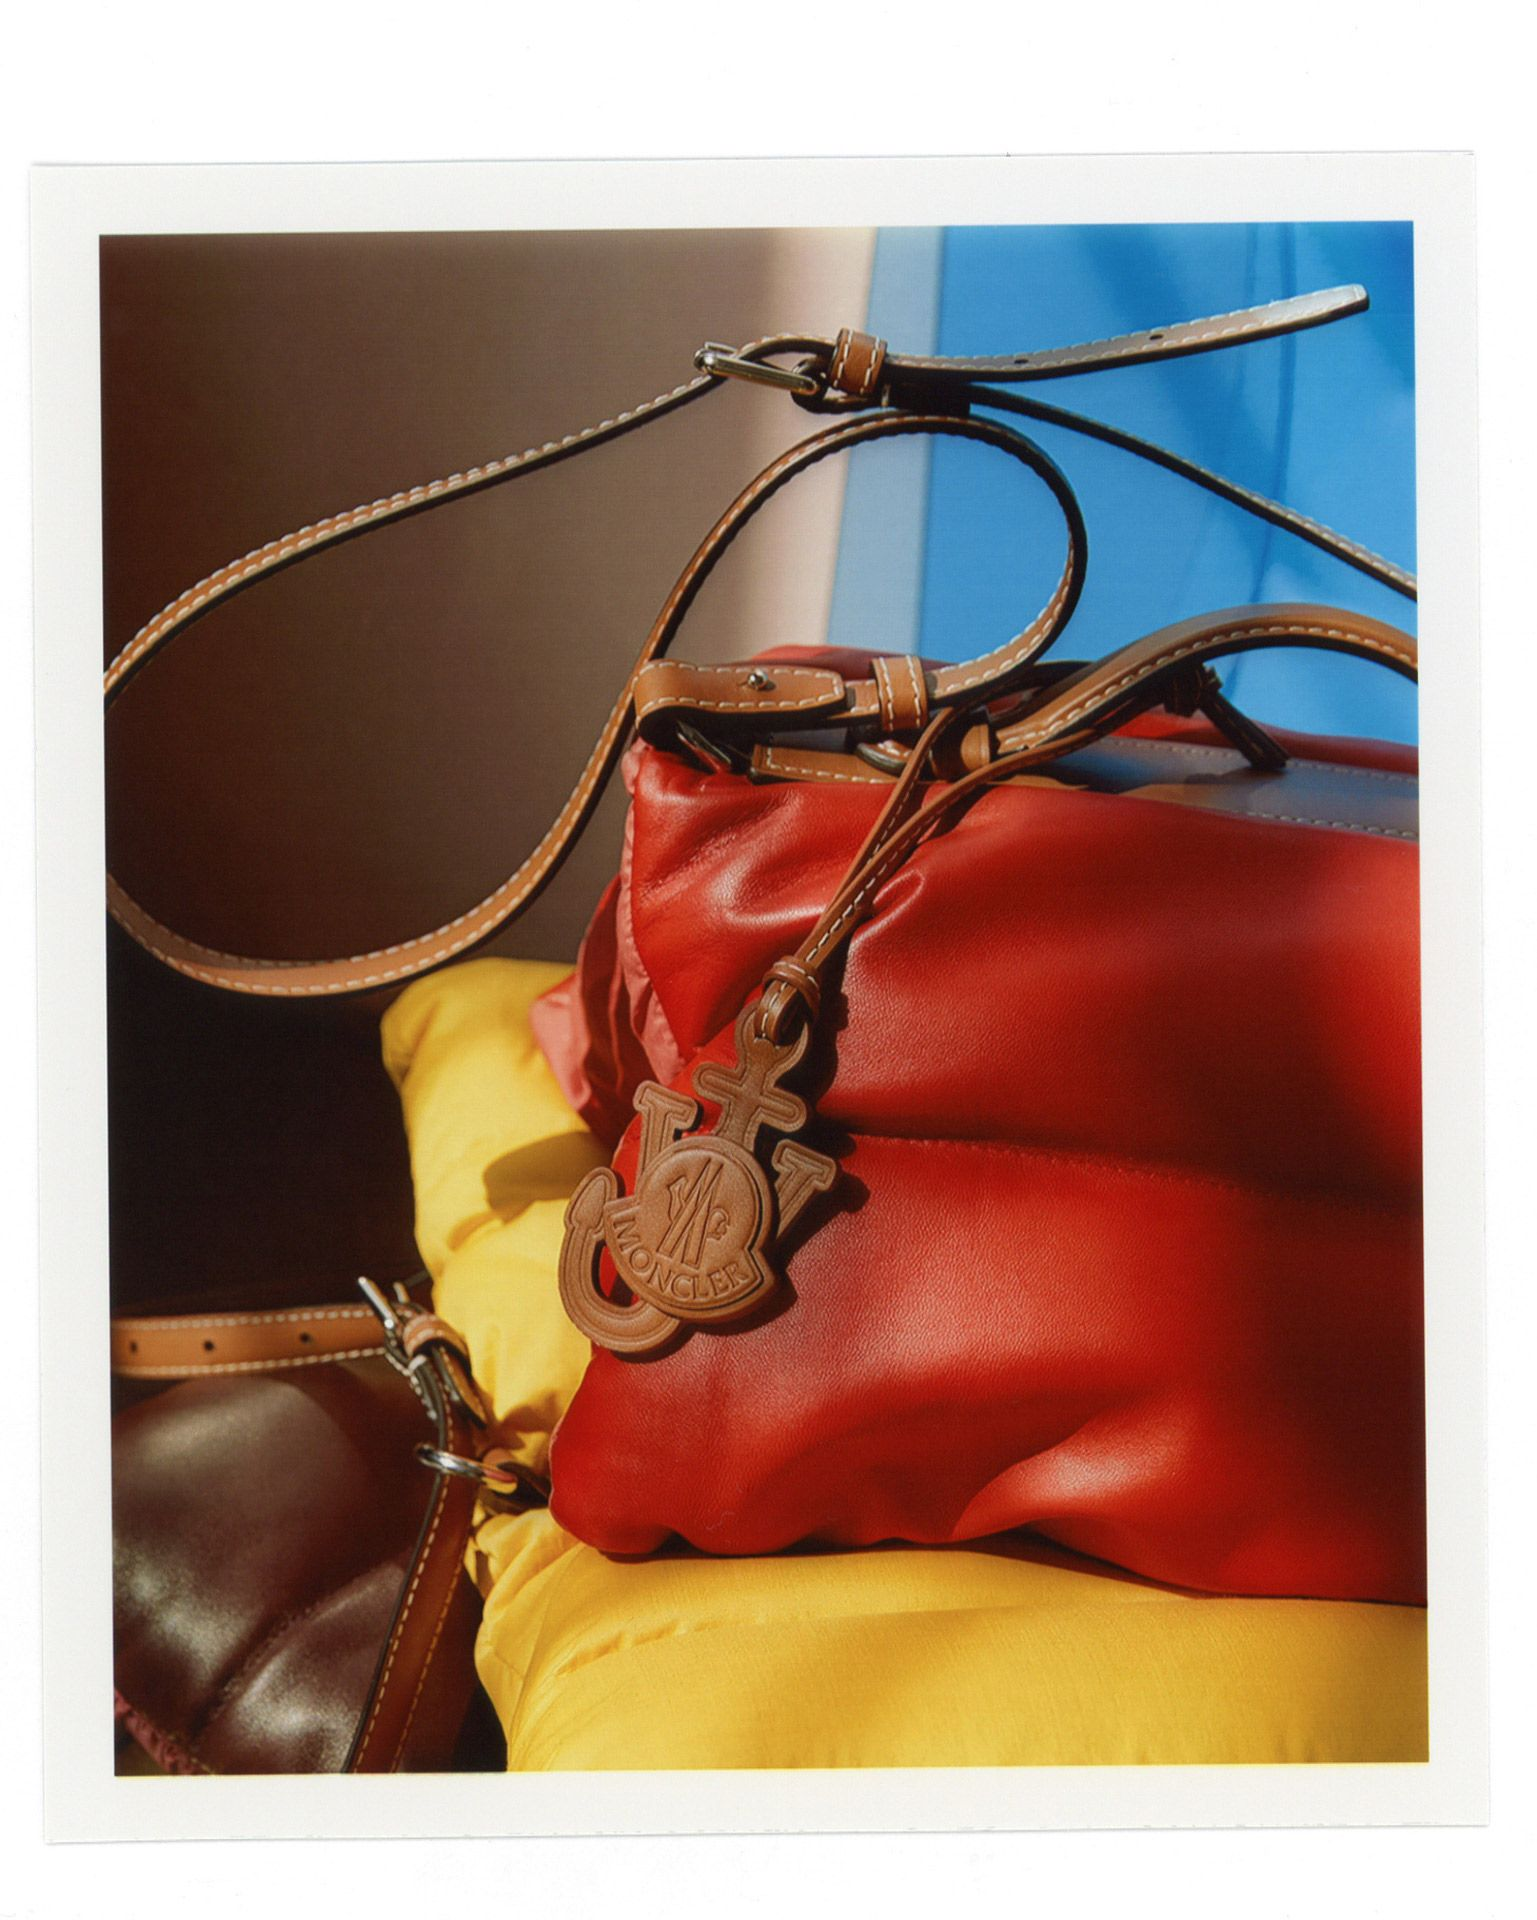 red leather bag resting on puffy yellow coat photographed by Oumayma B Tanfous for Moncler as a story for Document Journal magazine